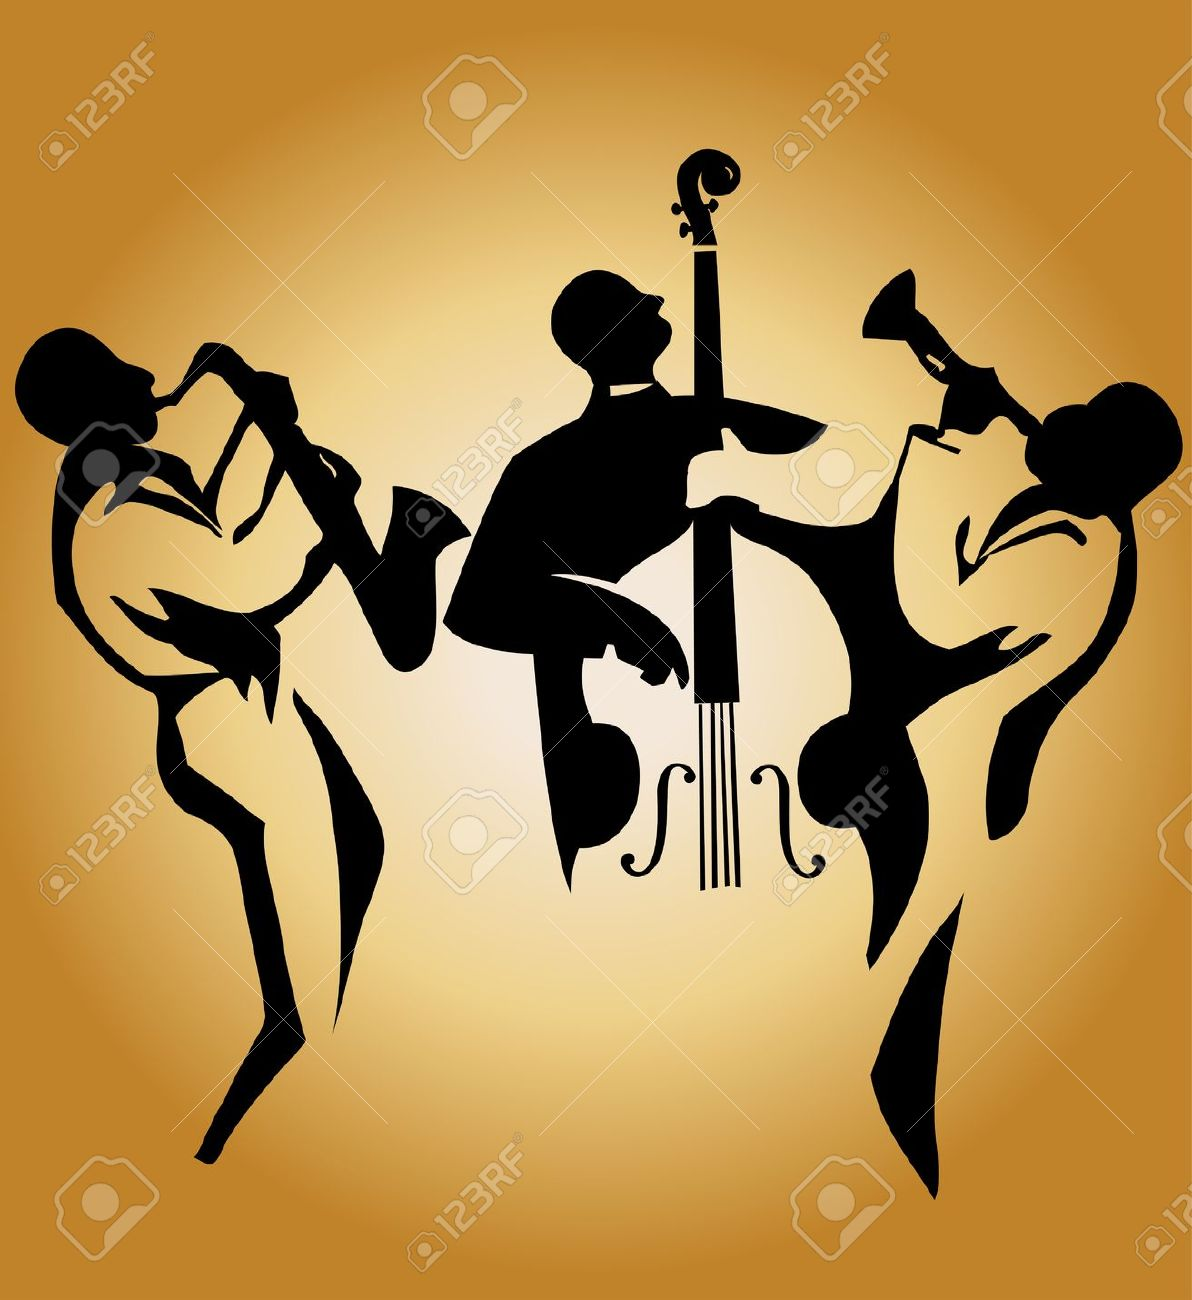 Jazz Band Clipart Free Silhouette Clipground